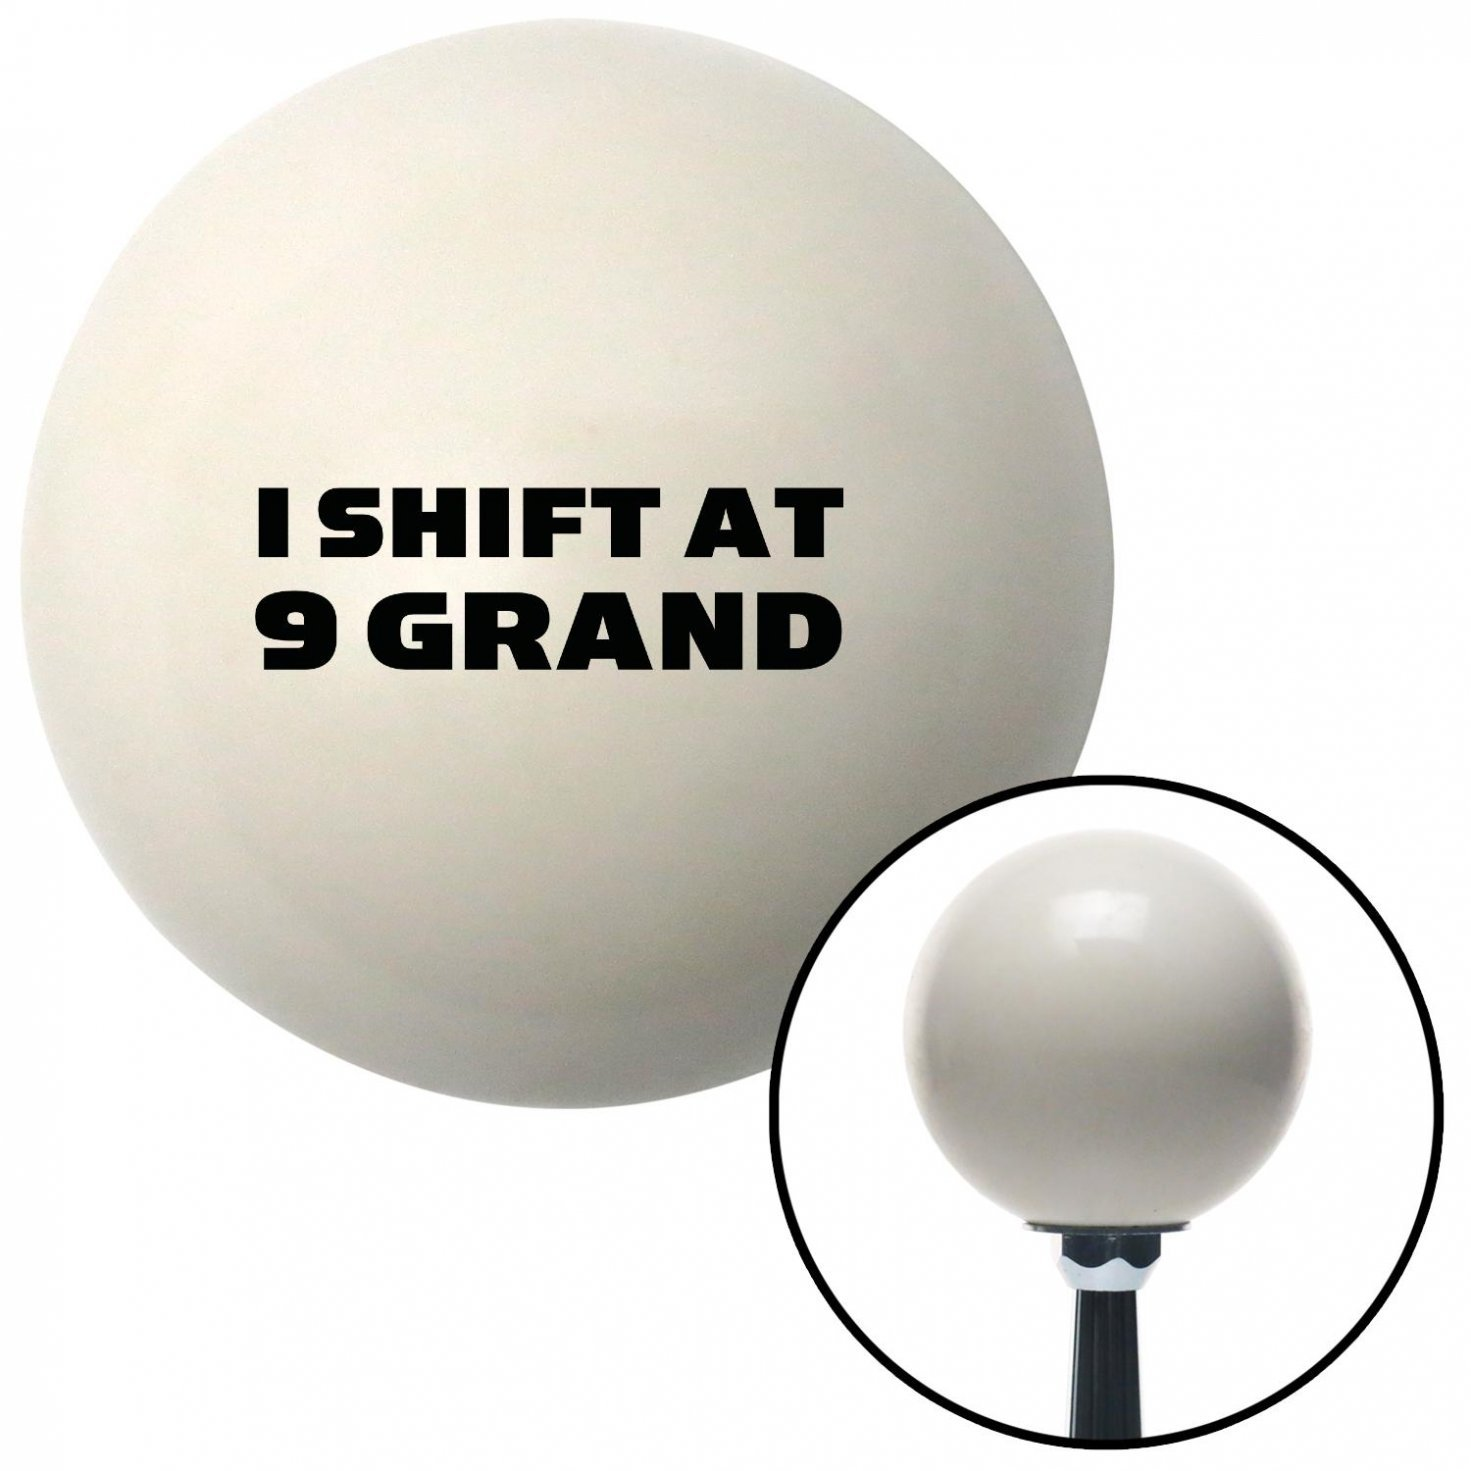 American Shifter 34348 Ivory Shift Knob with 16mm x 1.5 Insert Black I Shift at 9 Grand